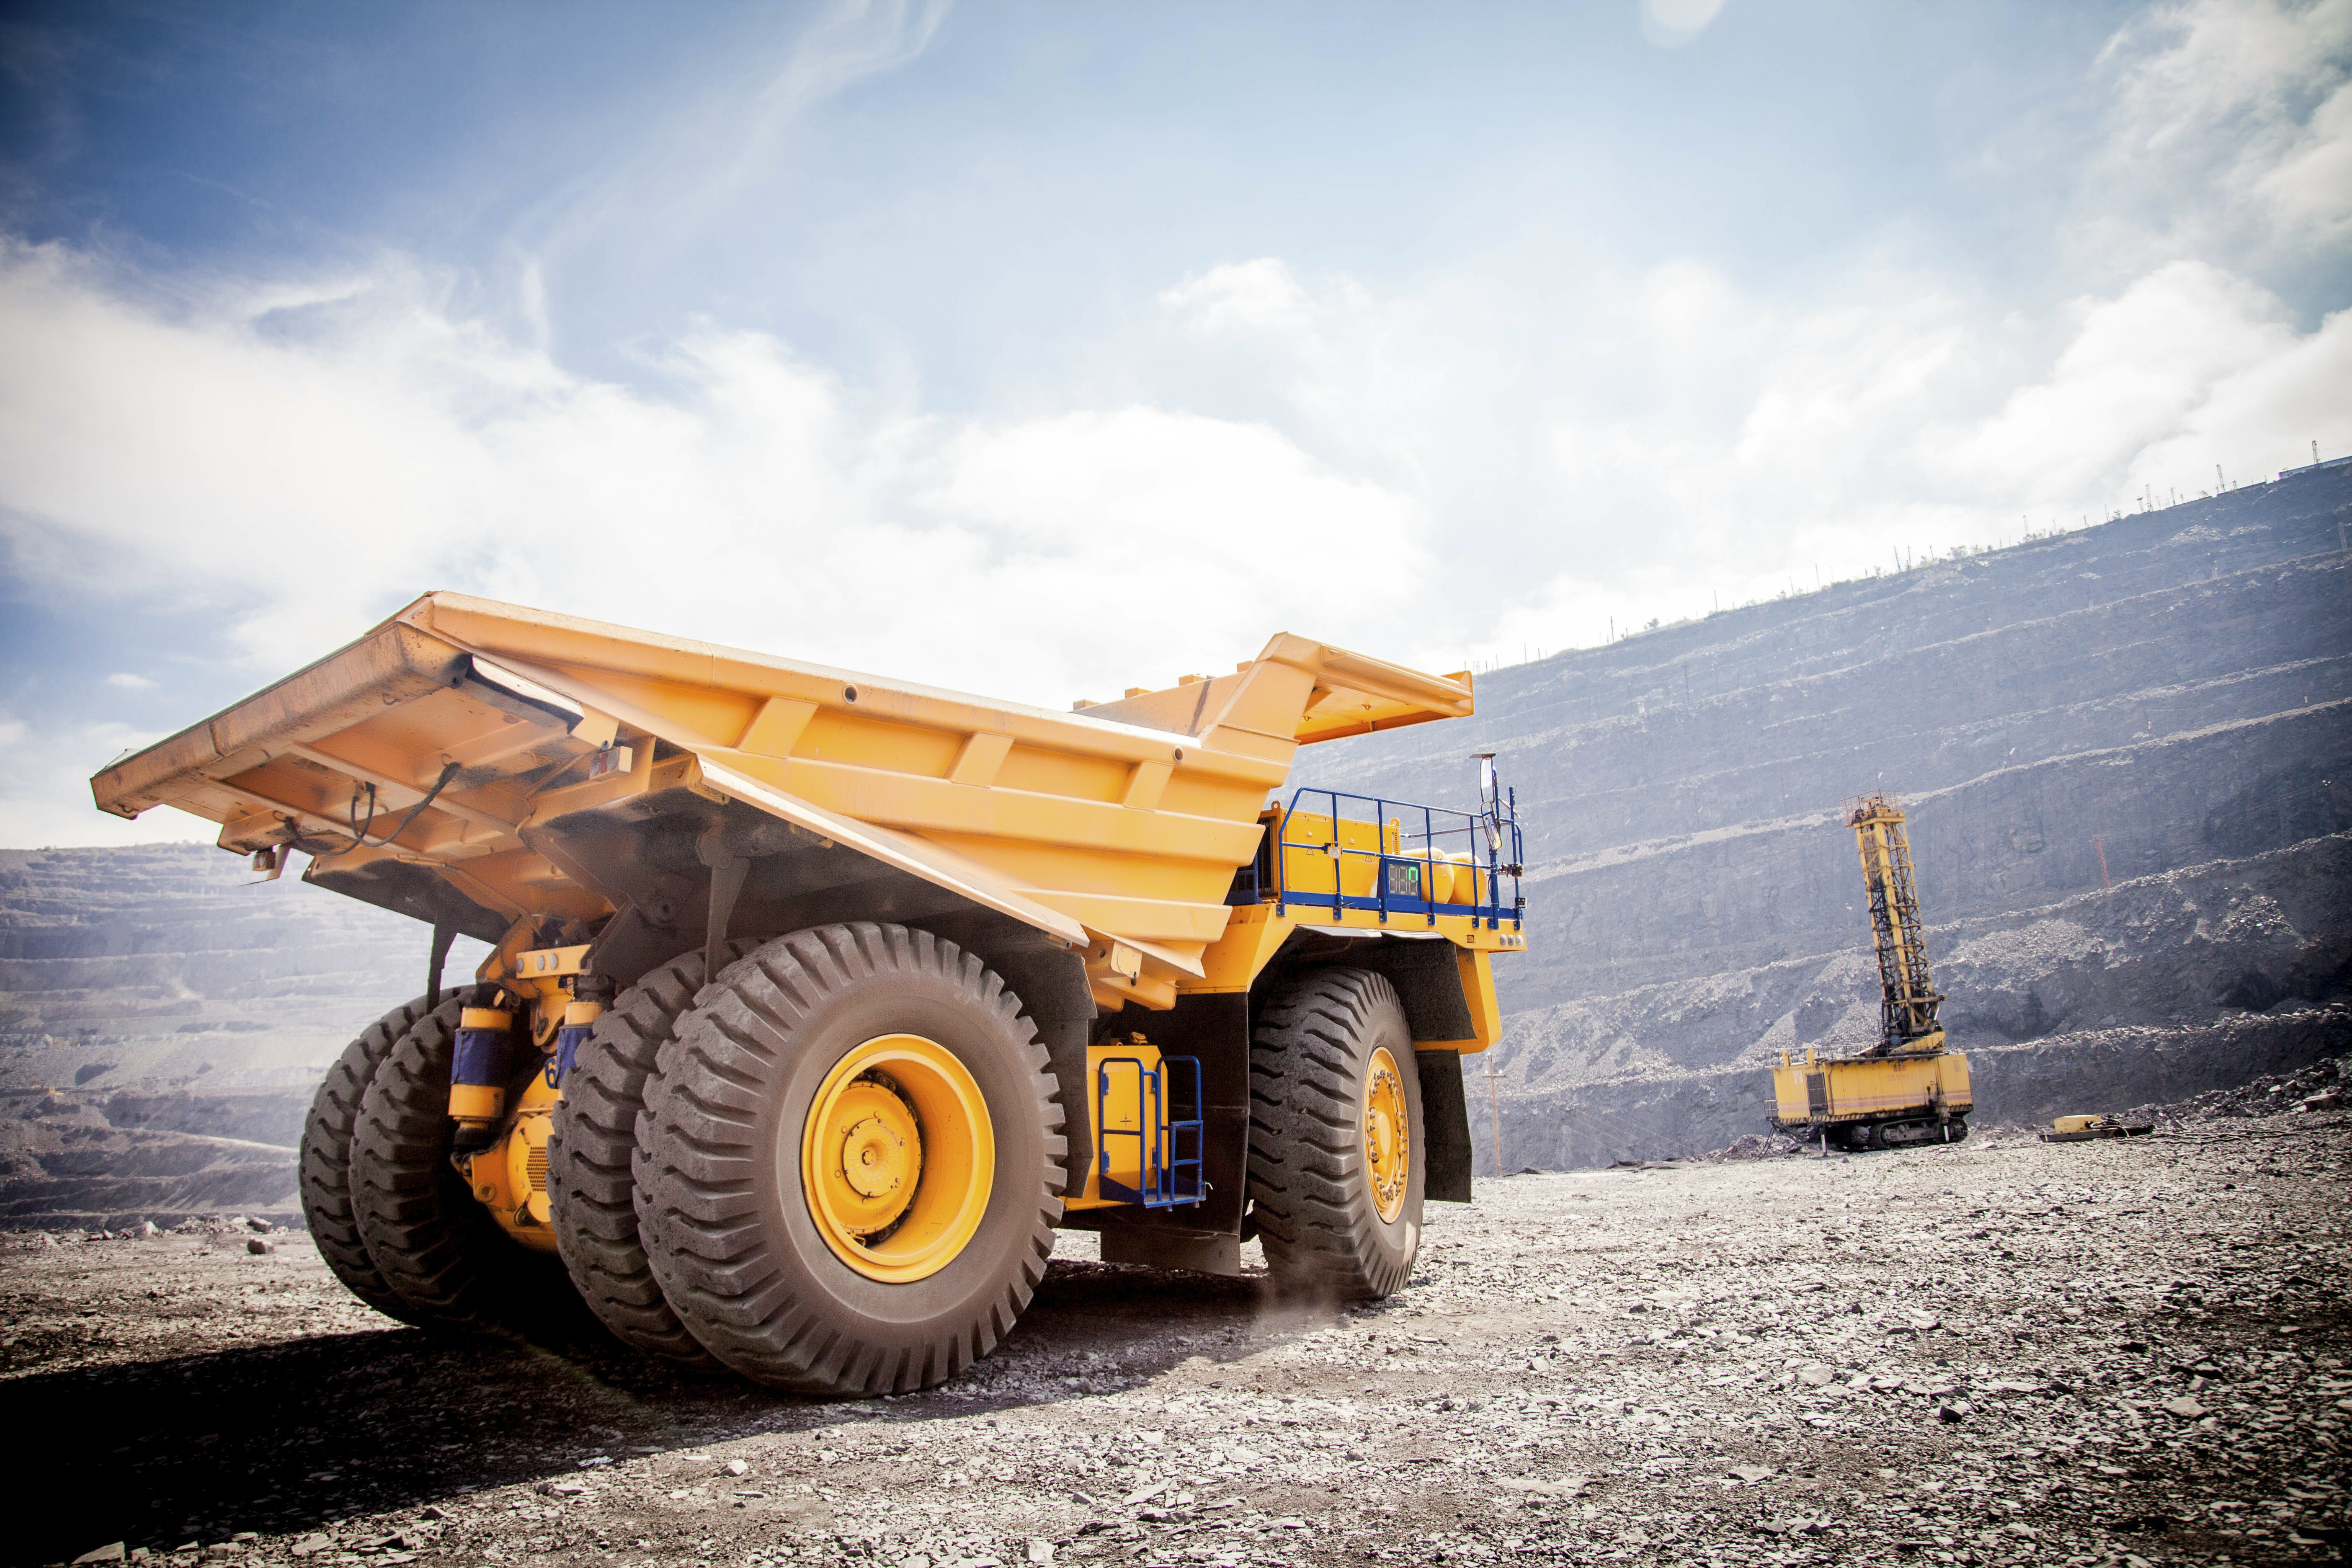 A mining site during the day with a yellow vehicle in the foreground and a drill in the background.